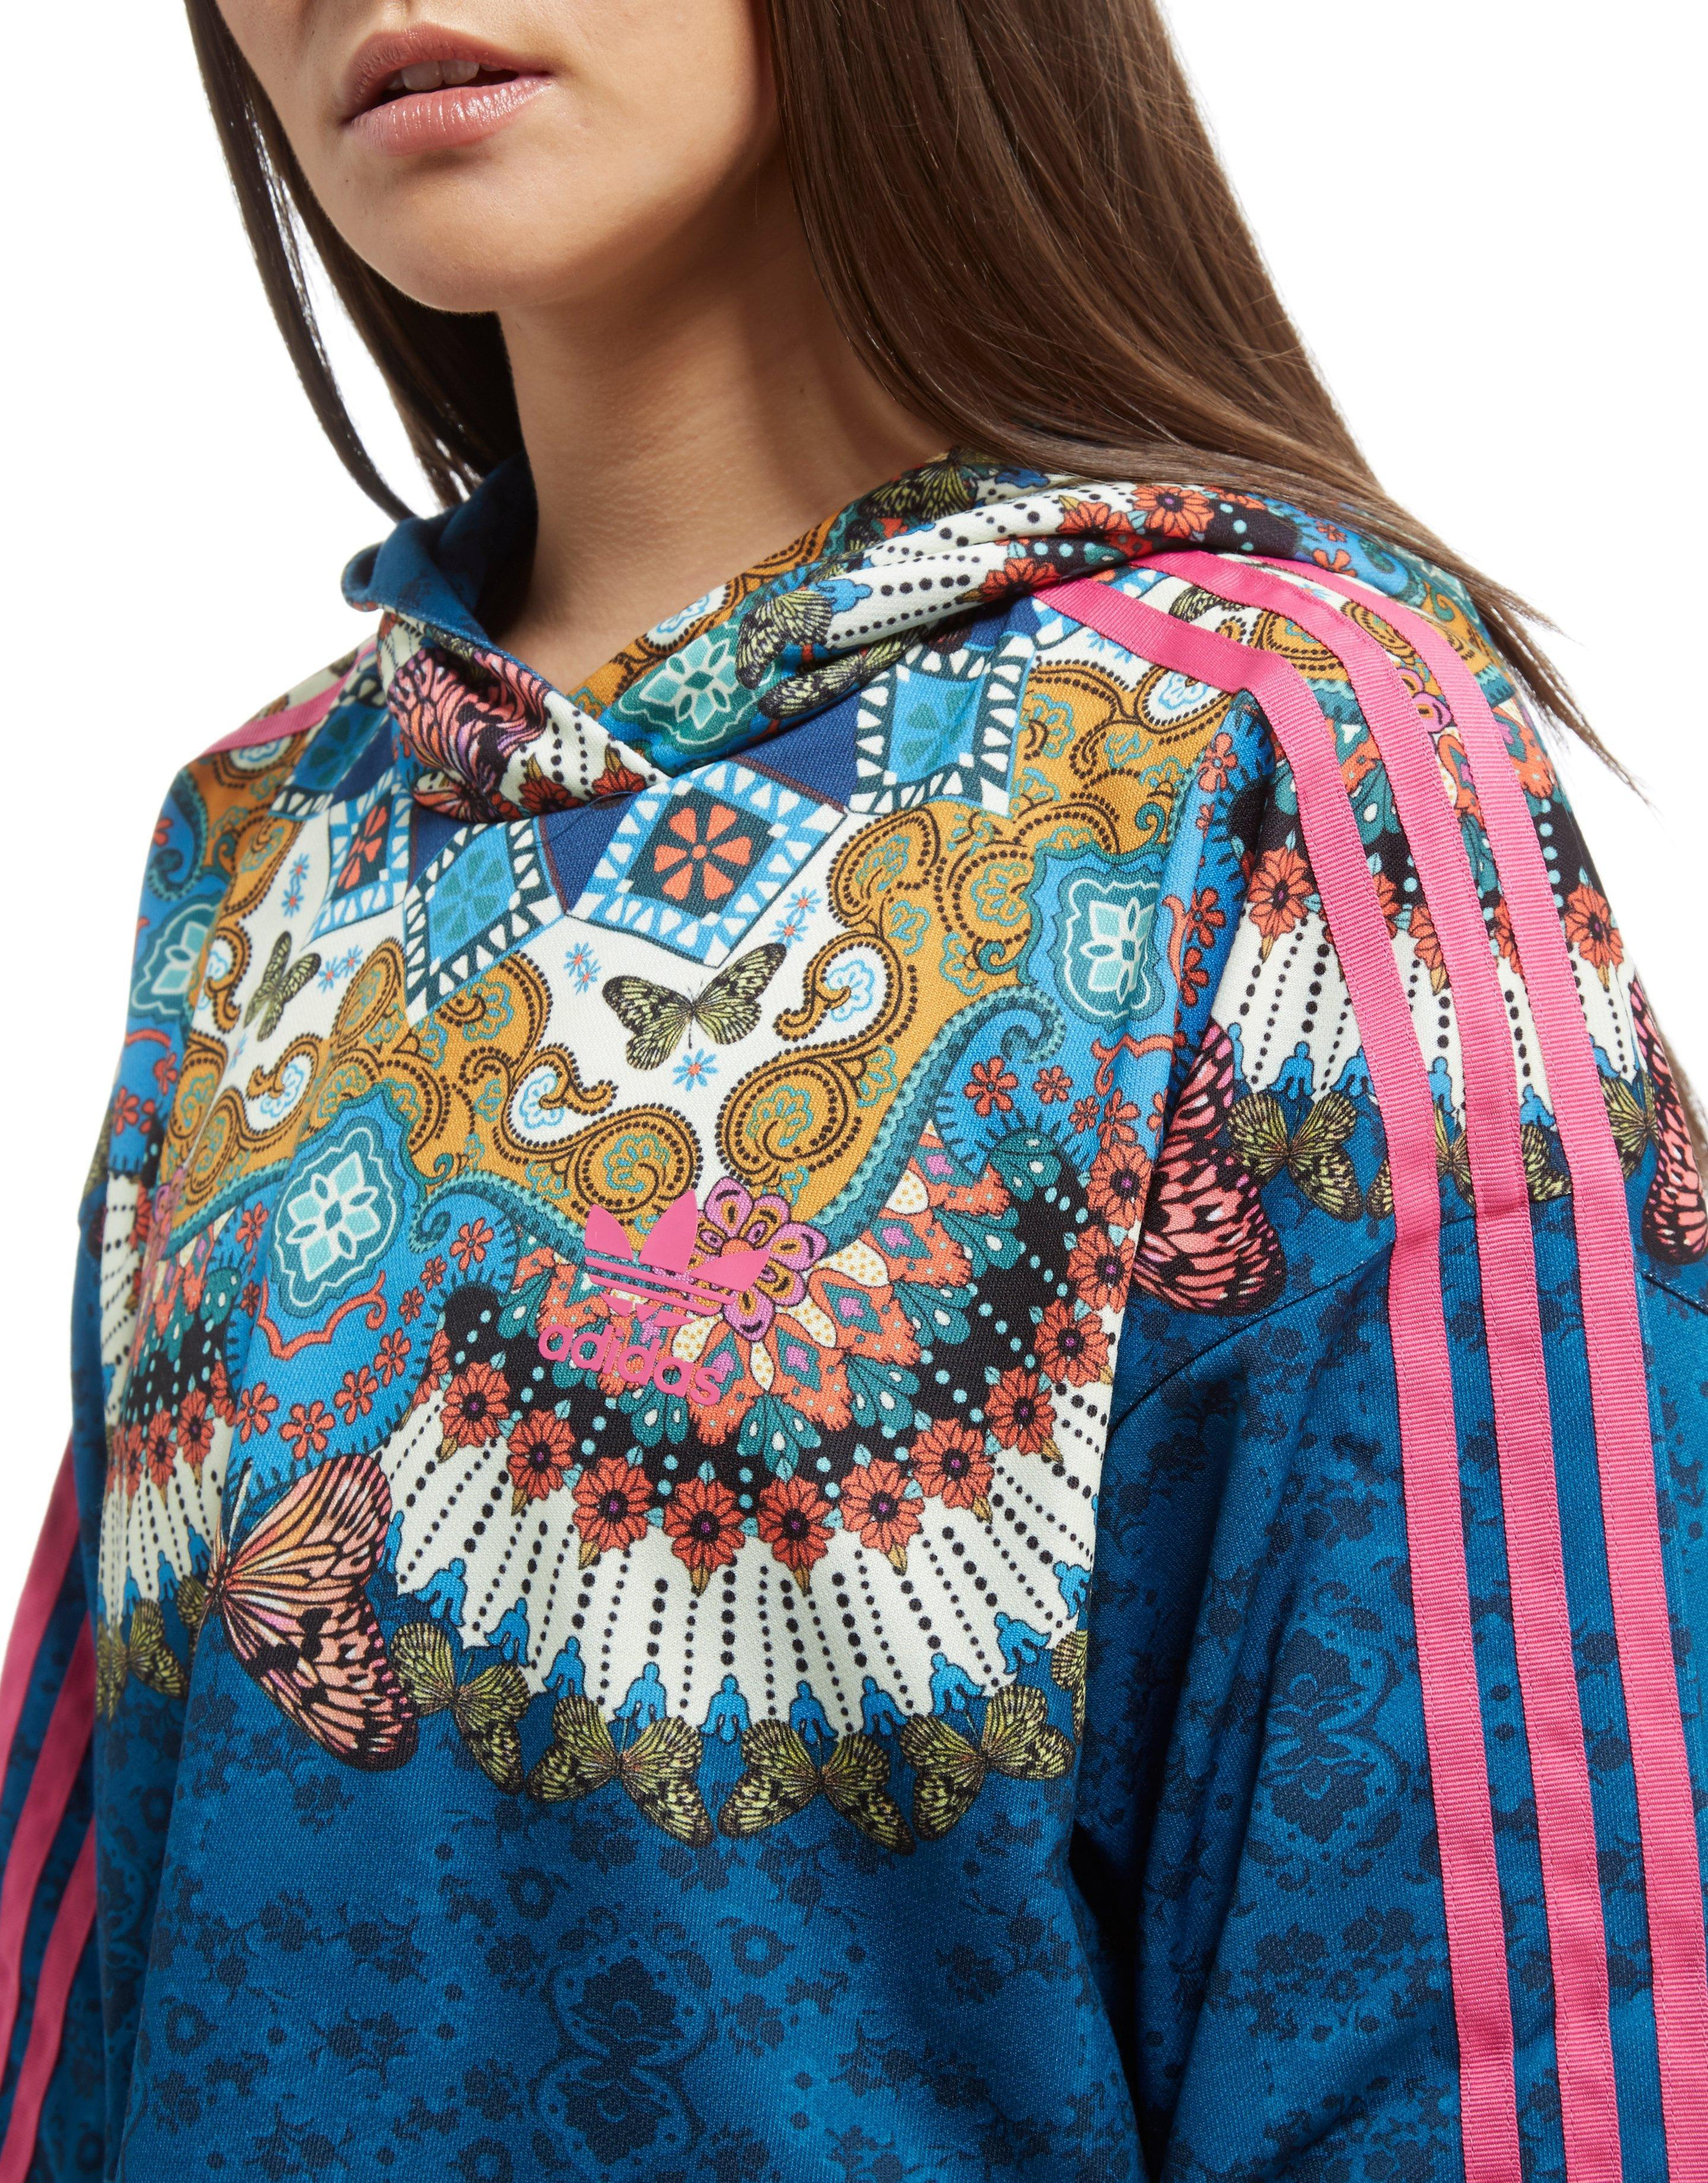 53e9bfb2b44 adidas Originals Borbomix Cropped Hoodie in Blue - Lyst